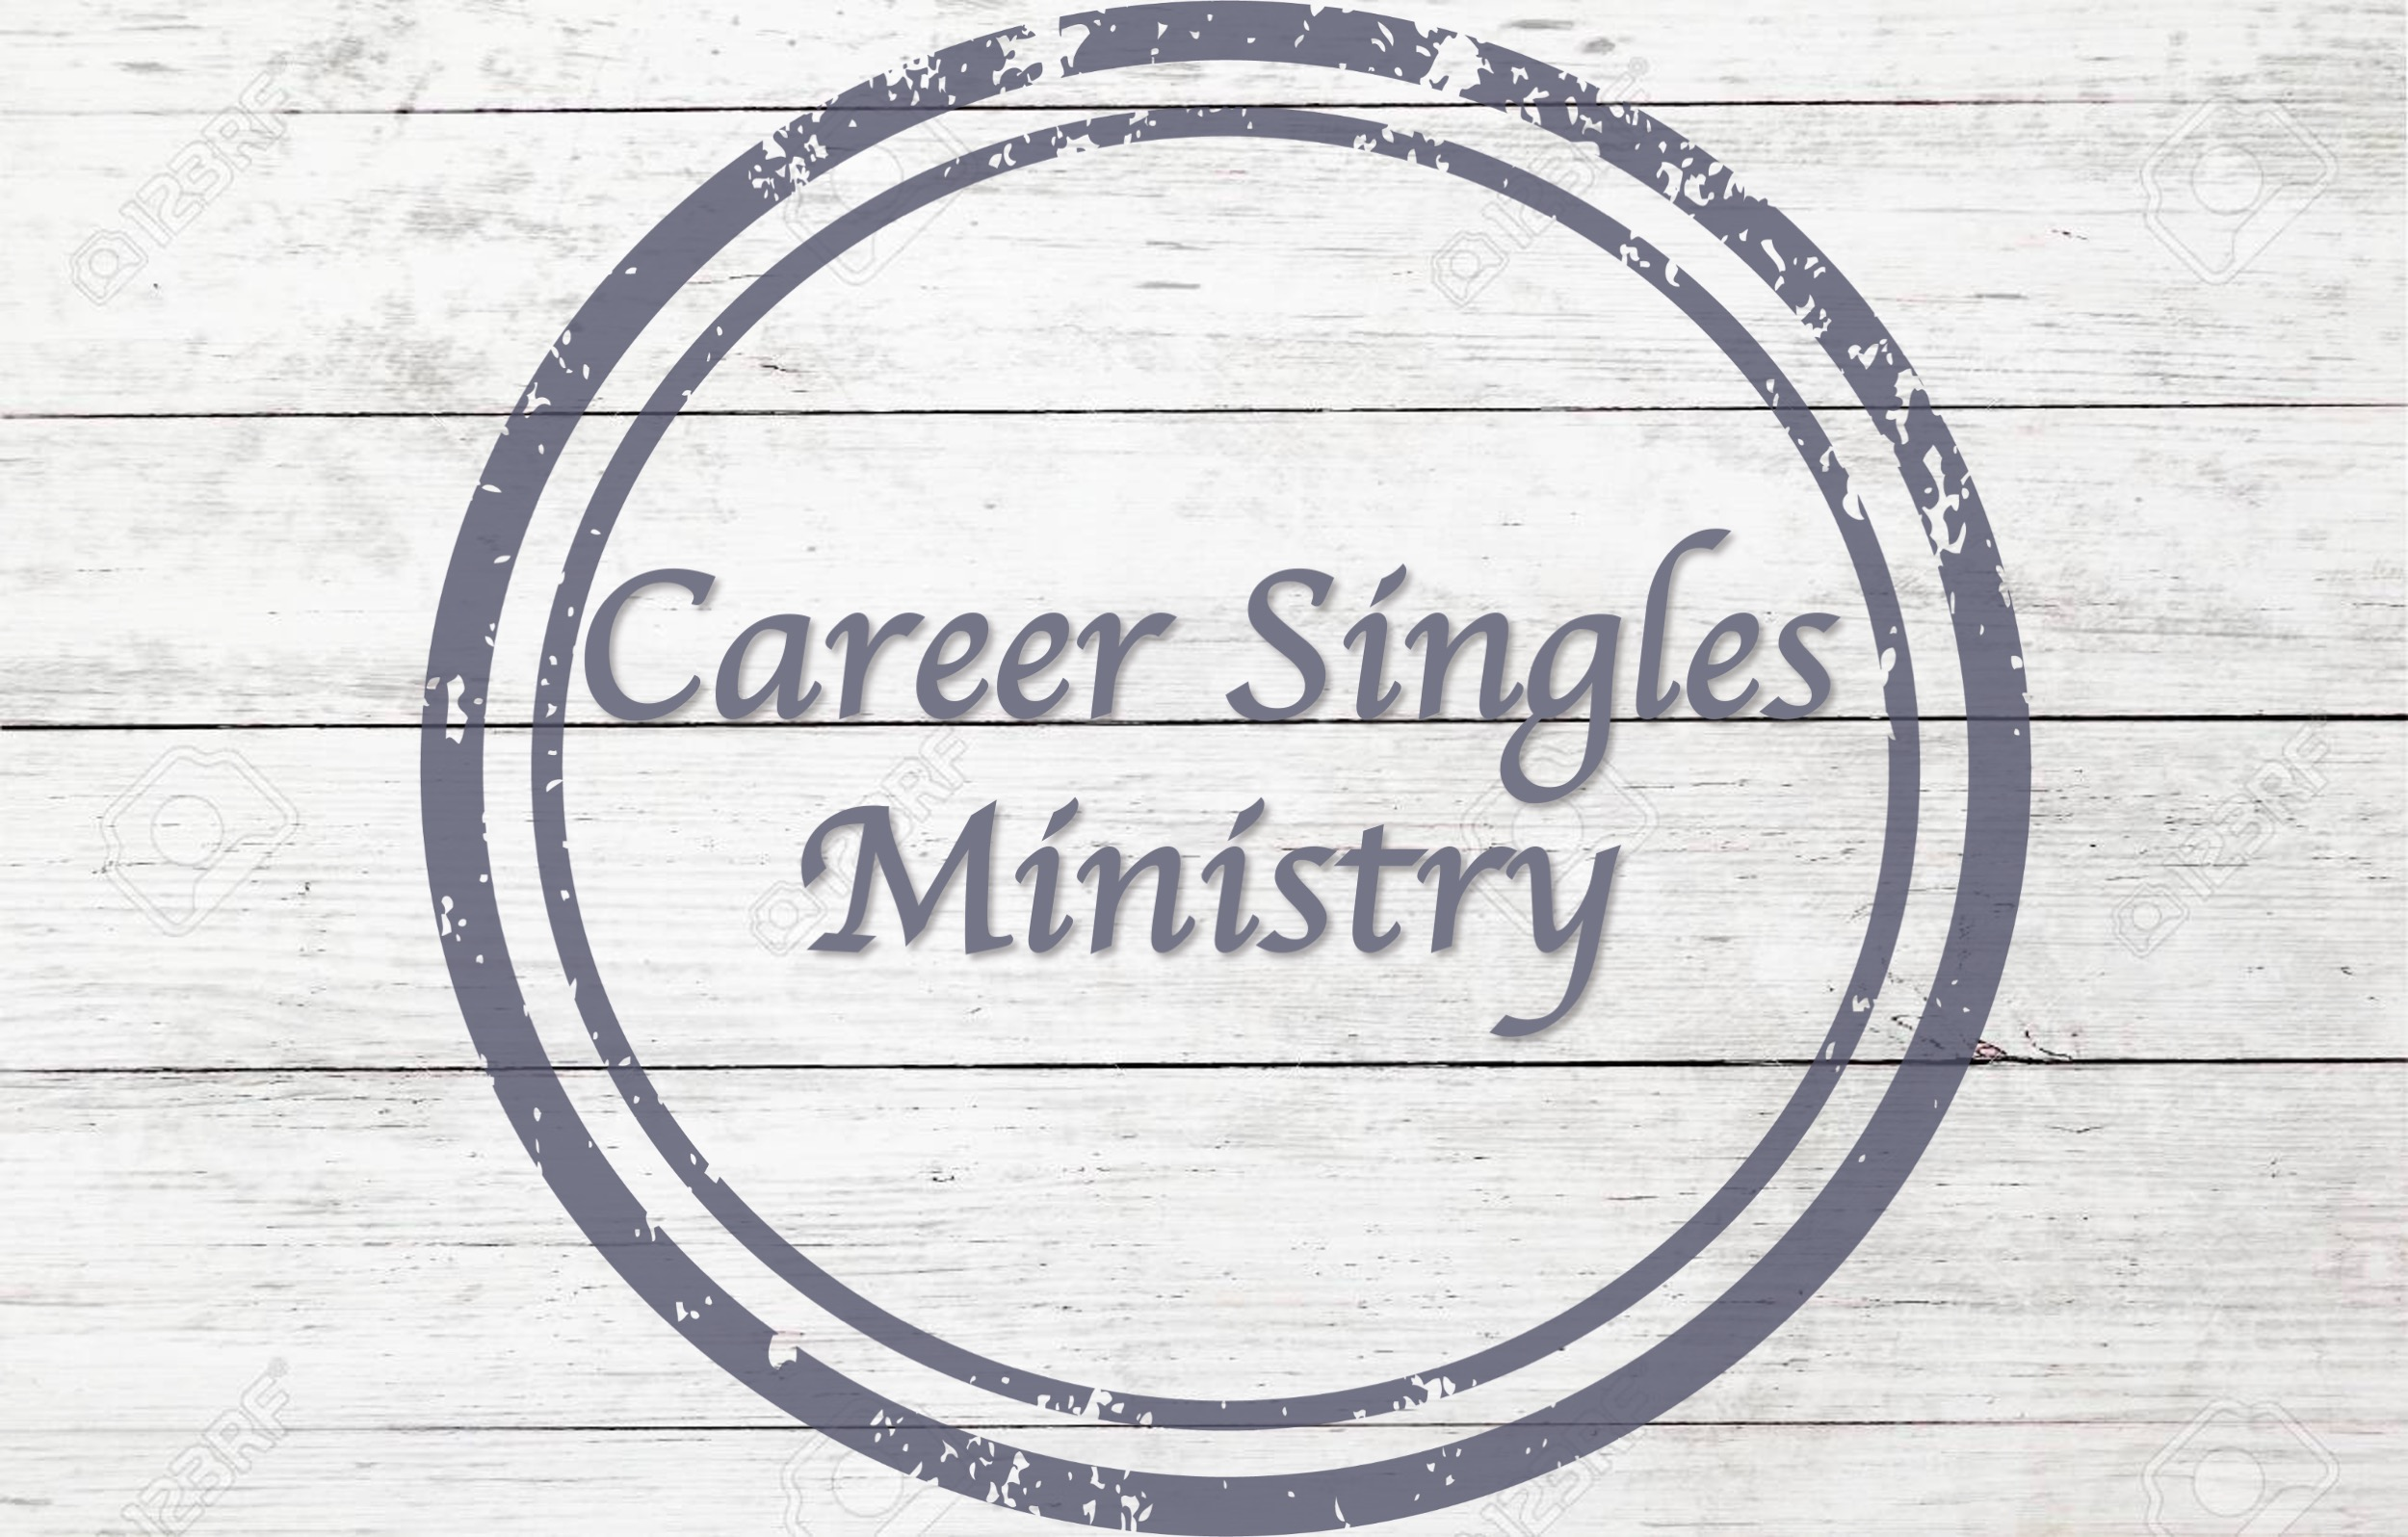 Career Singles image